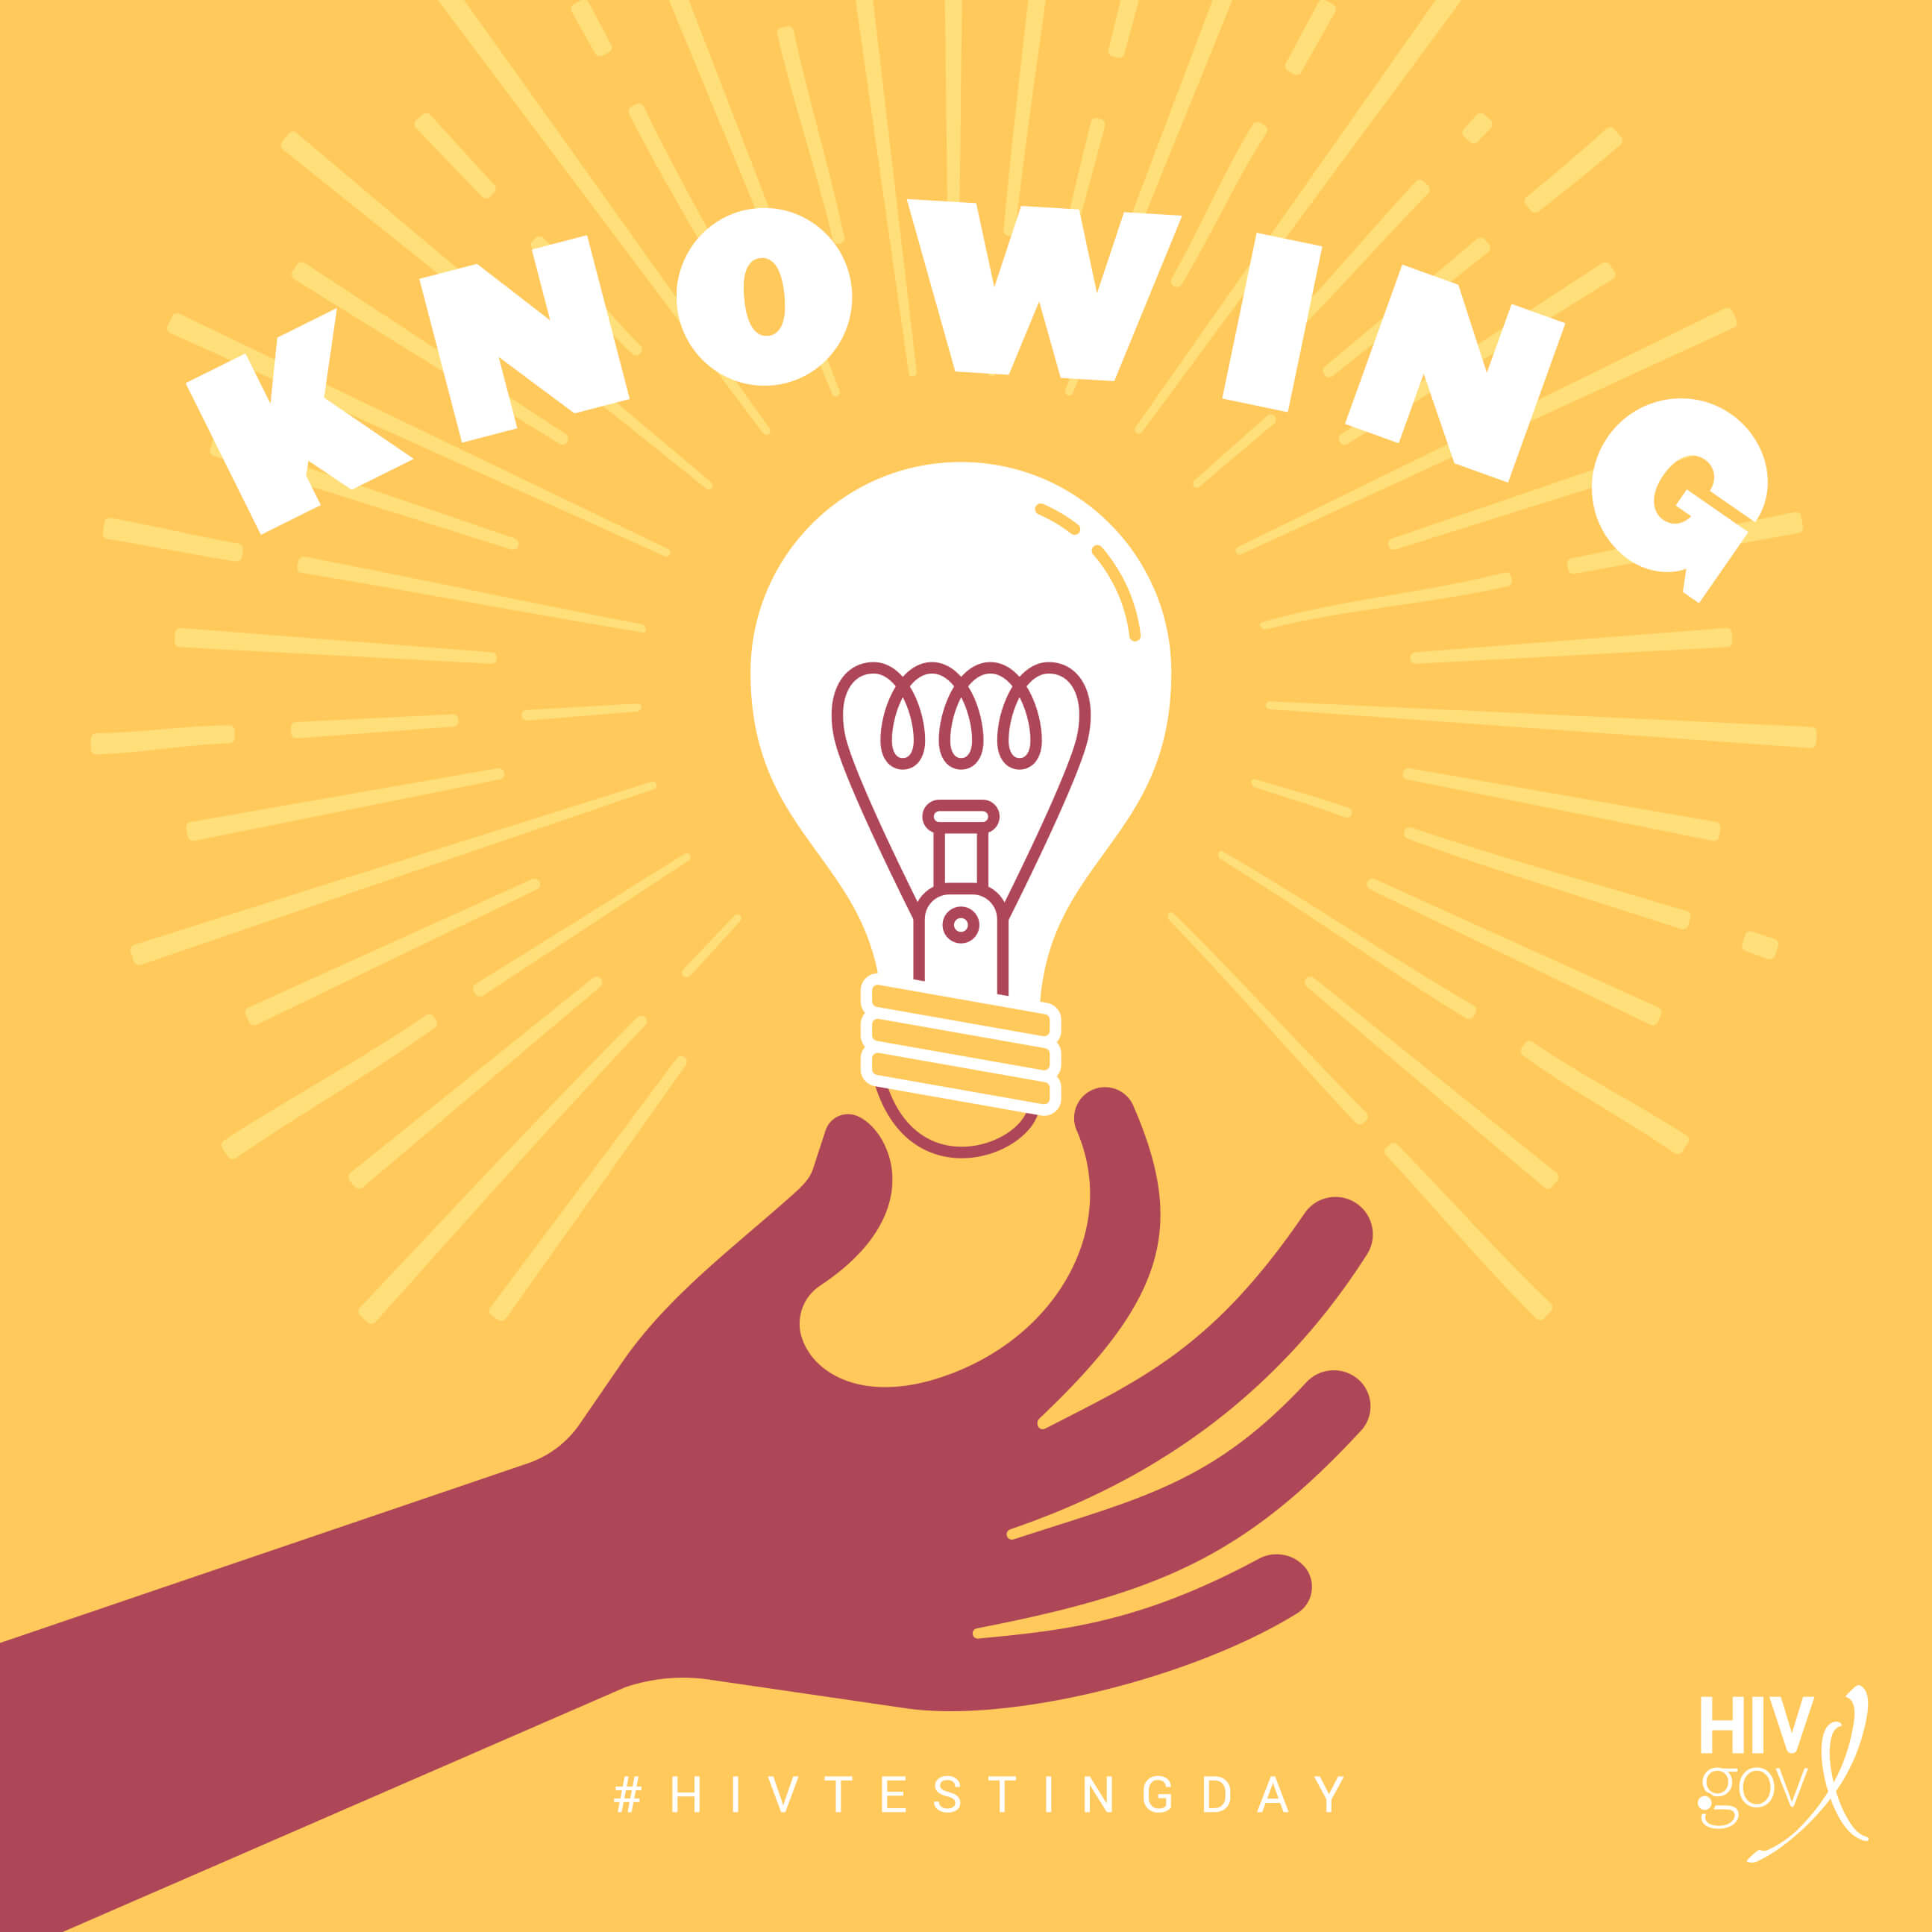 Knowing #HIVTESTINGDAY